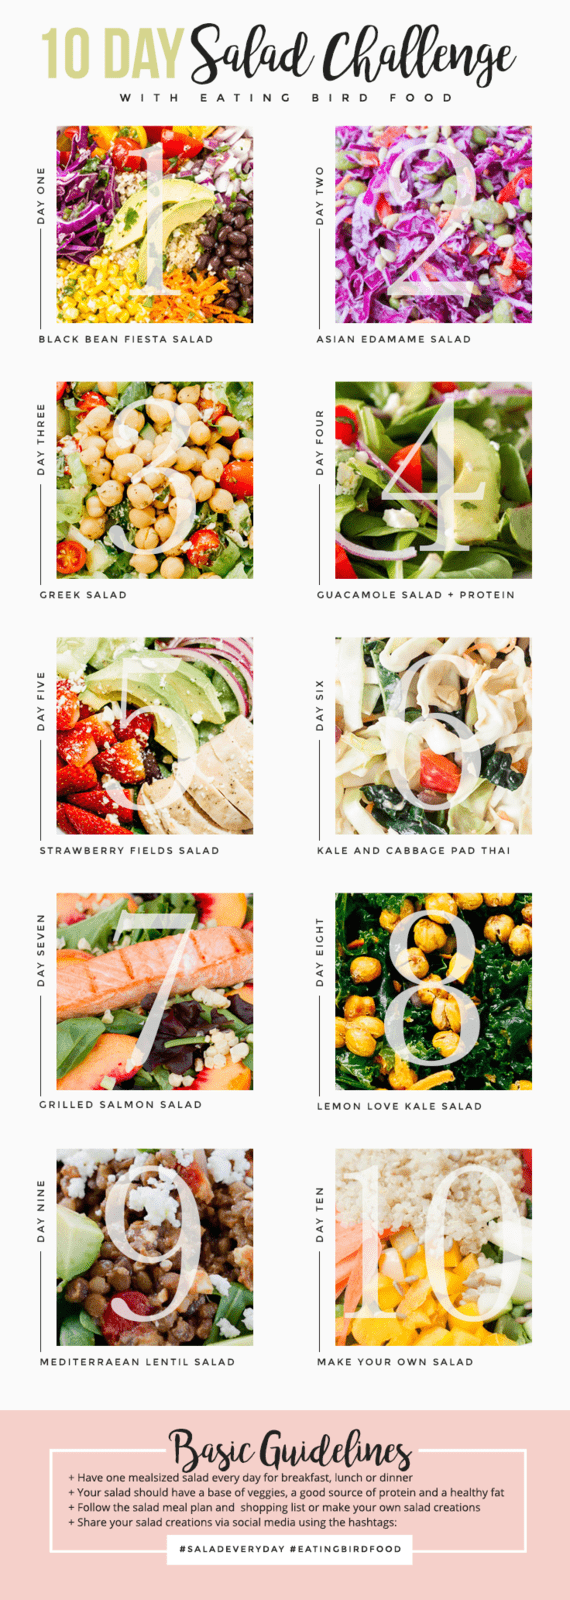 10 Day Salad Challenge! Eat a meal-sized salad every day for 10 days! // eatingbirdfood.com